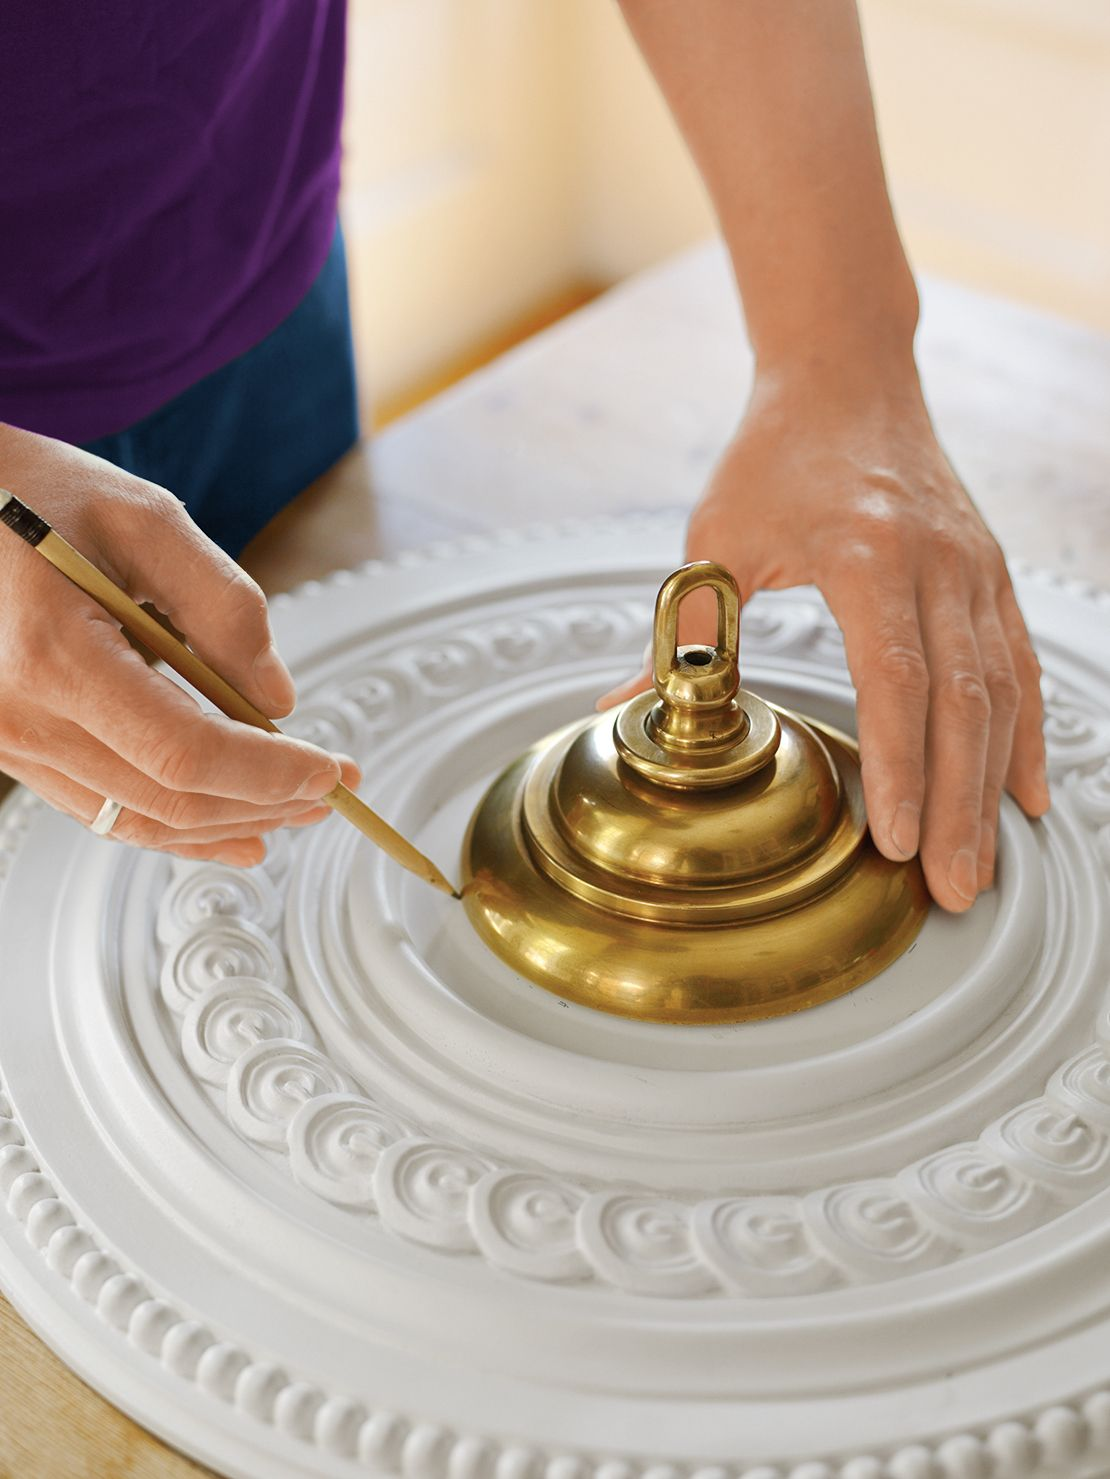 How To Install A Ceiling Medallion With Images Ceiling Medallions Ceiling Medallions Diy Ceiling Medallion Chandelier